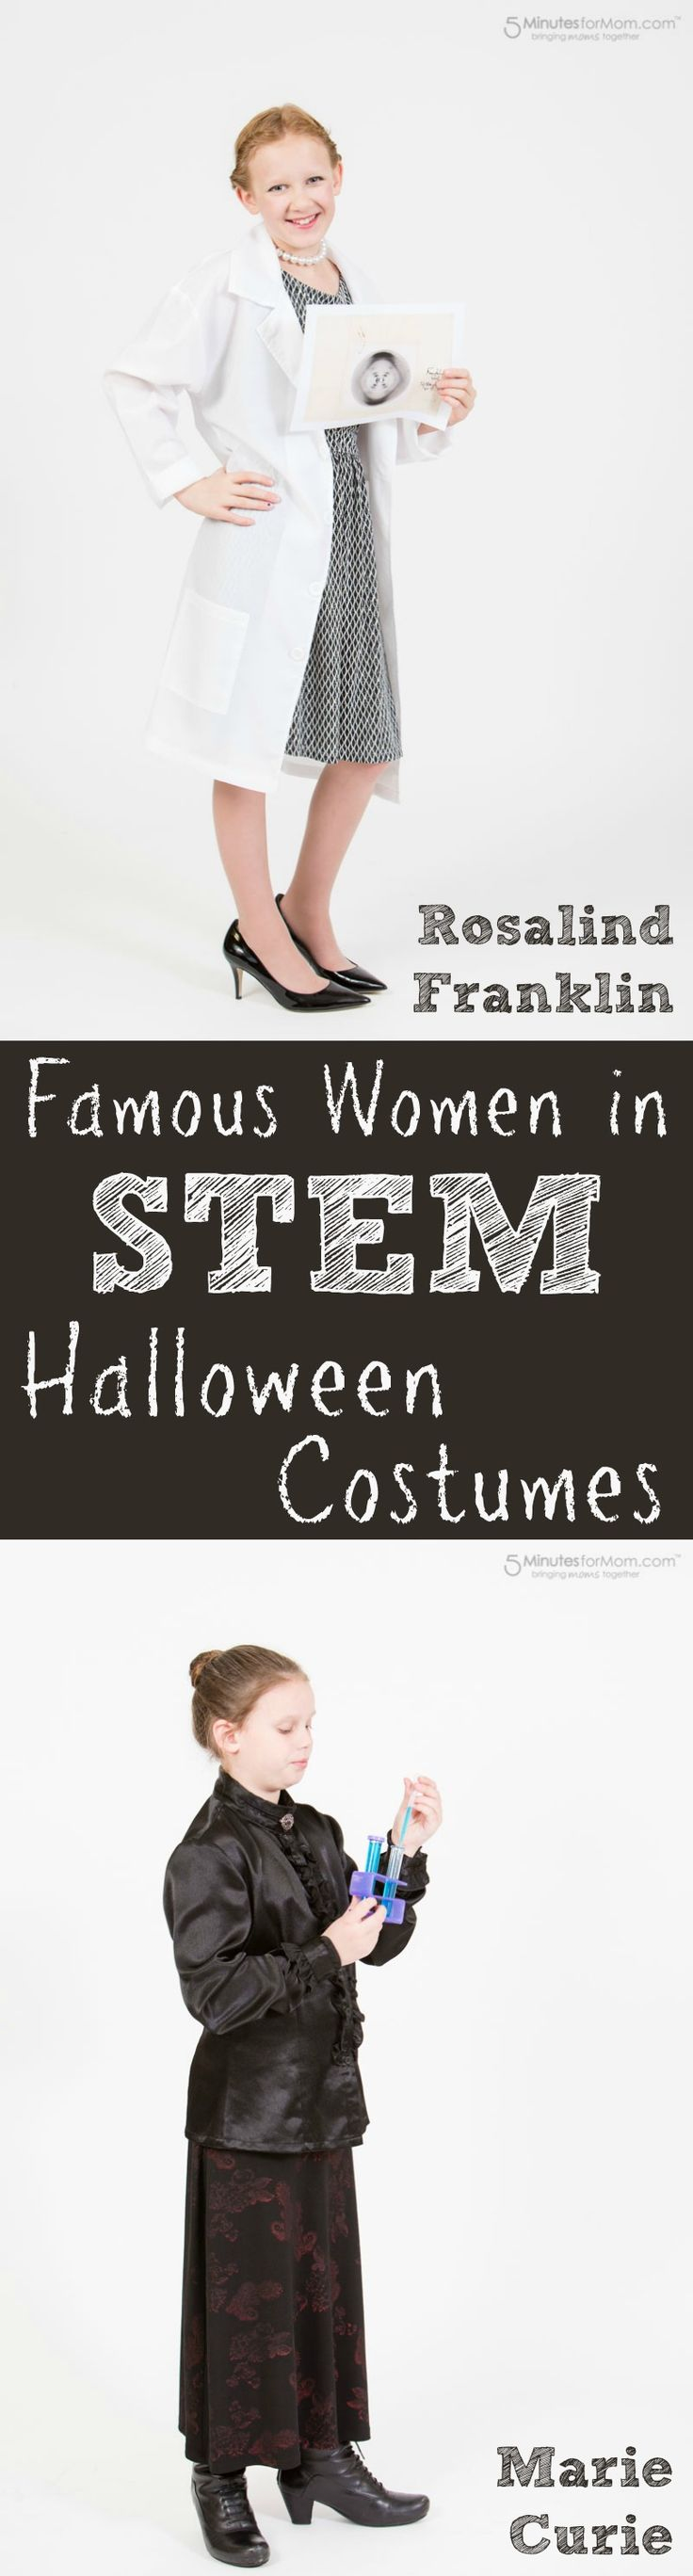 Famous women in STEM Halloween costumes - Rosalind Franklin and Marie Curie DIY Costumes. For a fun alternative to the typical Halloween costume, help your daughter dress up as a brilliant scientist. Sponsored.